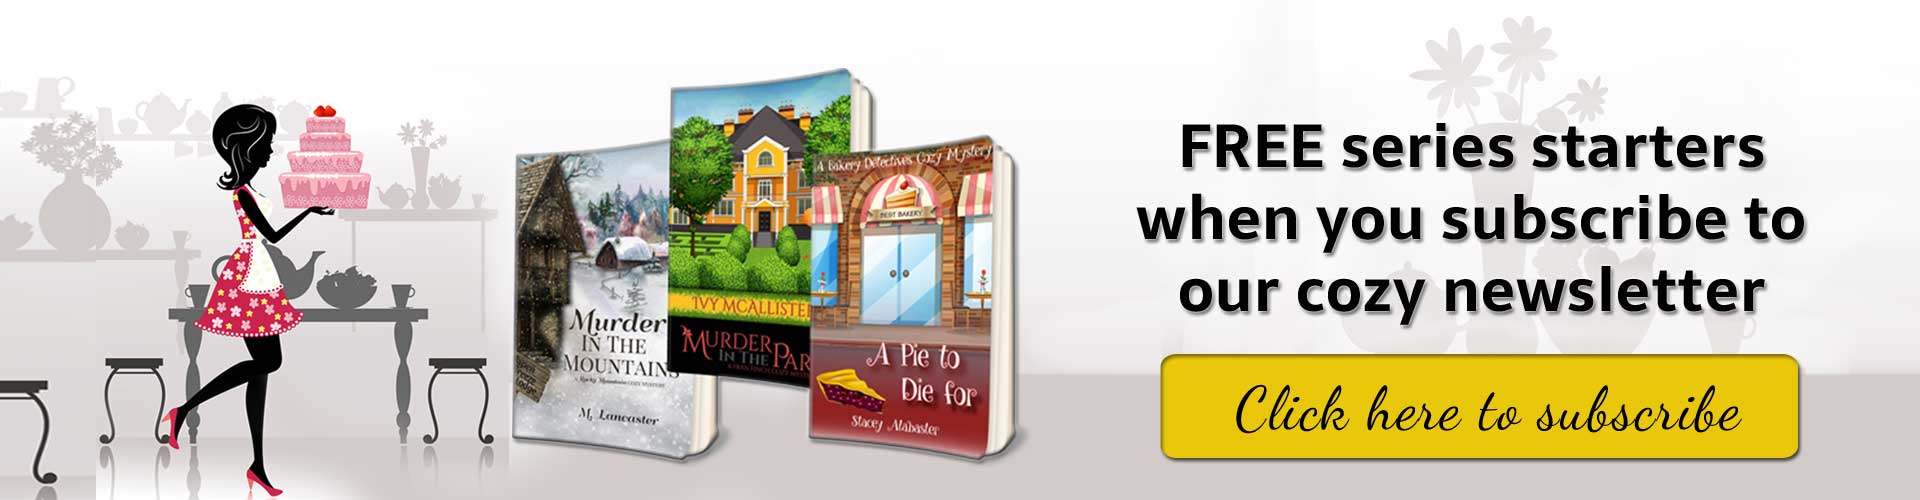 Cozy mystery newsletter offer - free books